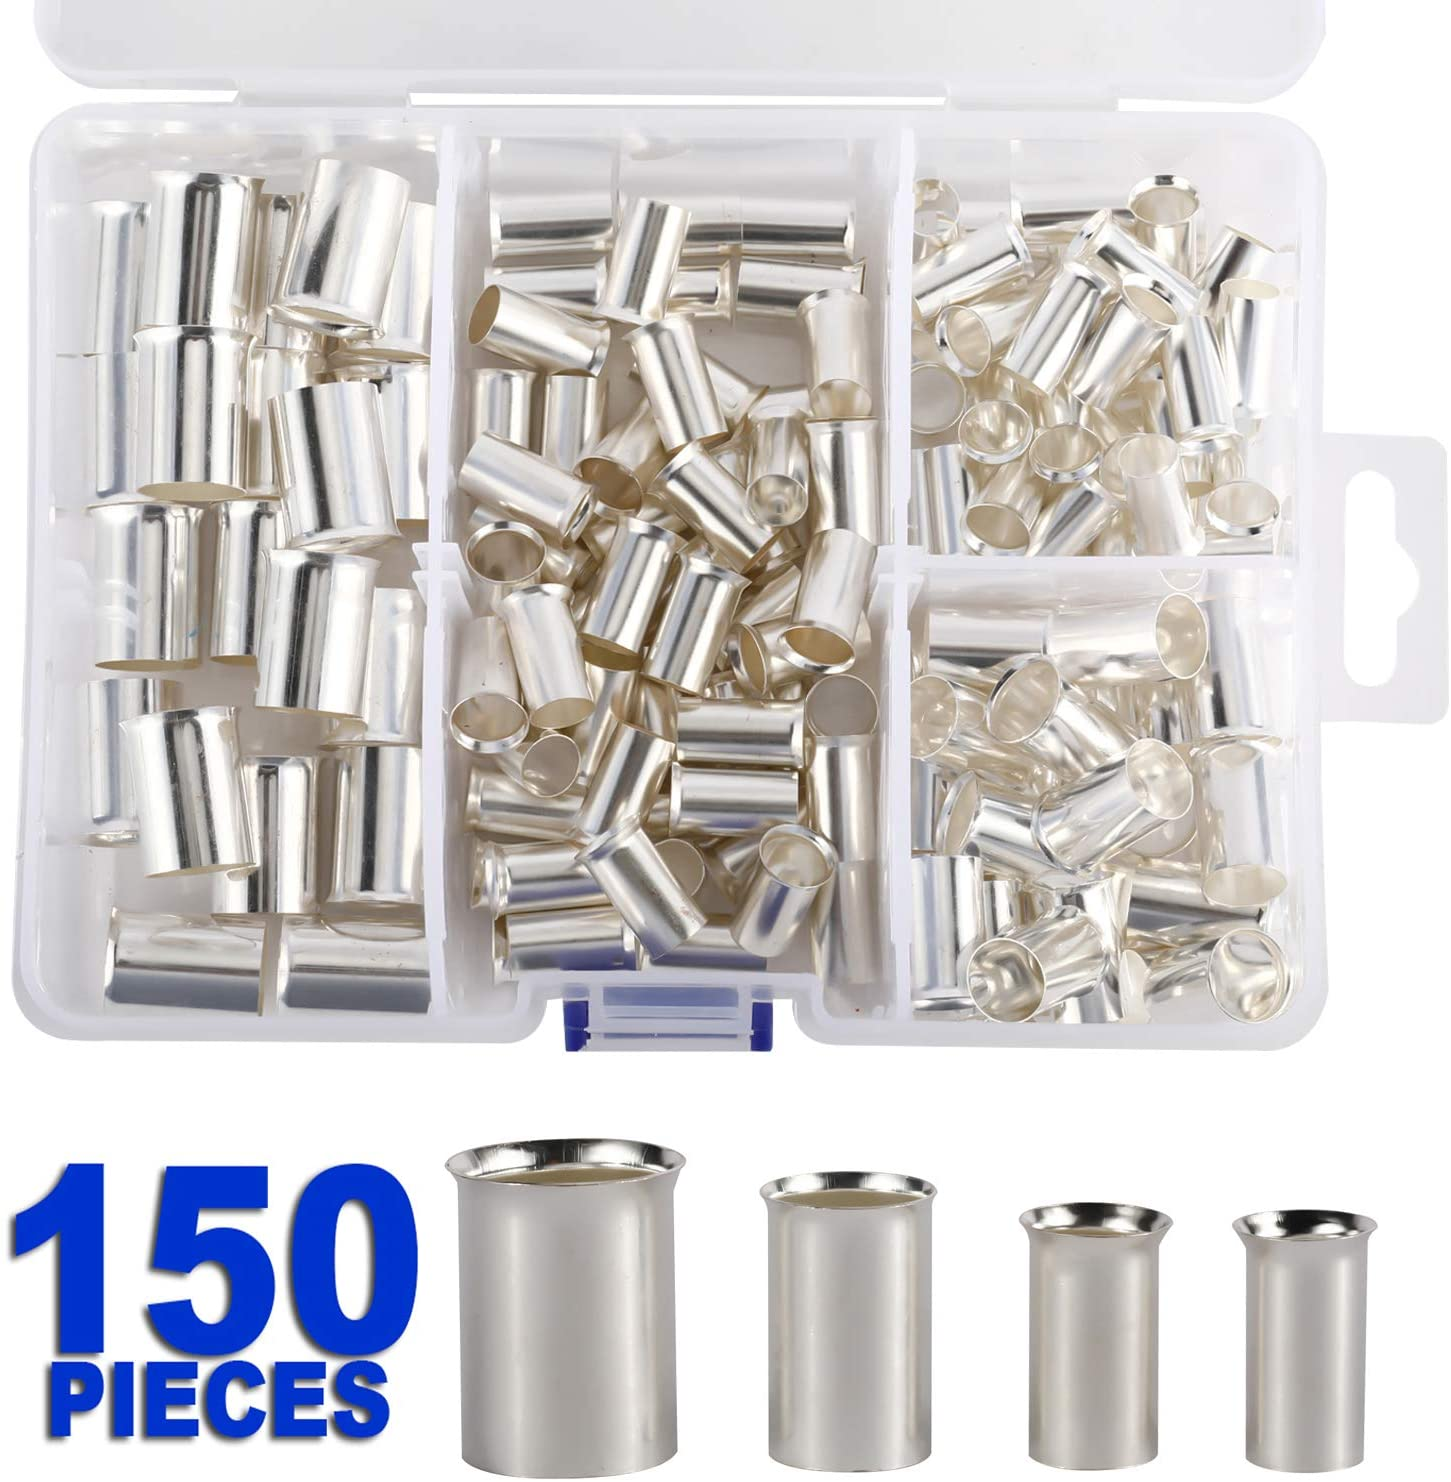 HighFree 150 Pcs Wire Copper Crimp Connector, Silver Plated Non Insulated Cable Housing Wire Ferrules Pin Cord End Terminal Assortment Kit for Car Audio Installers (4 Types Gauge: AWG 4,2,1,2/0)